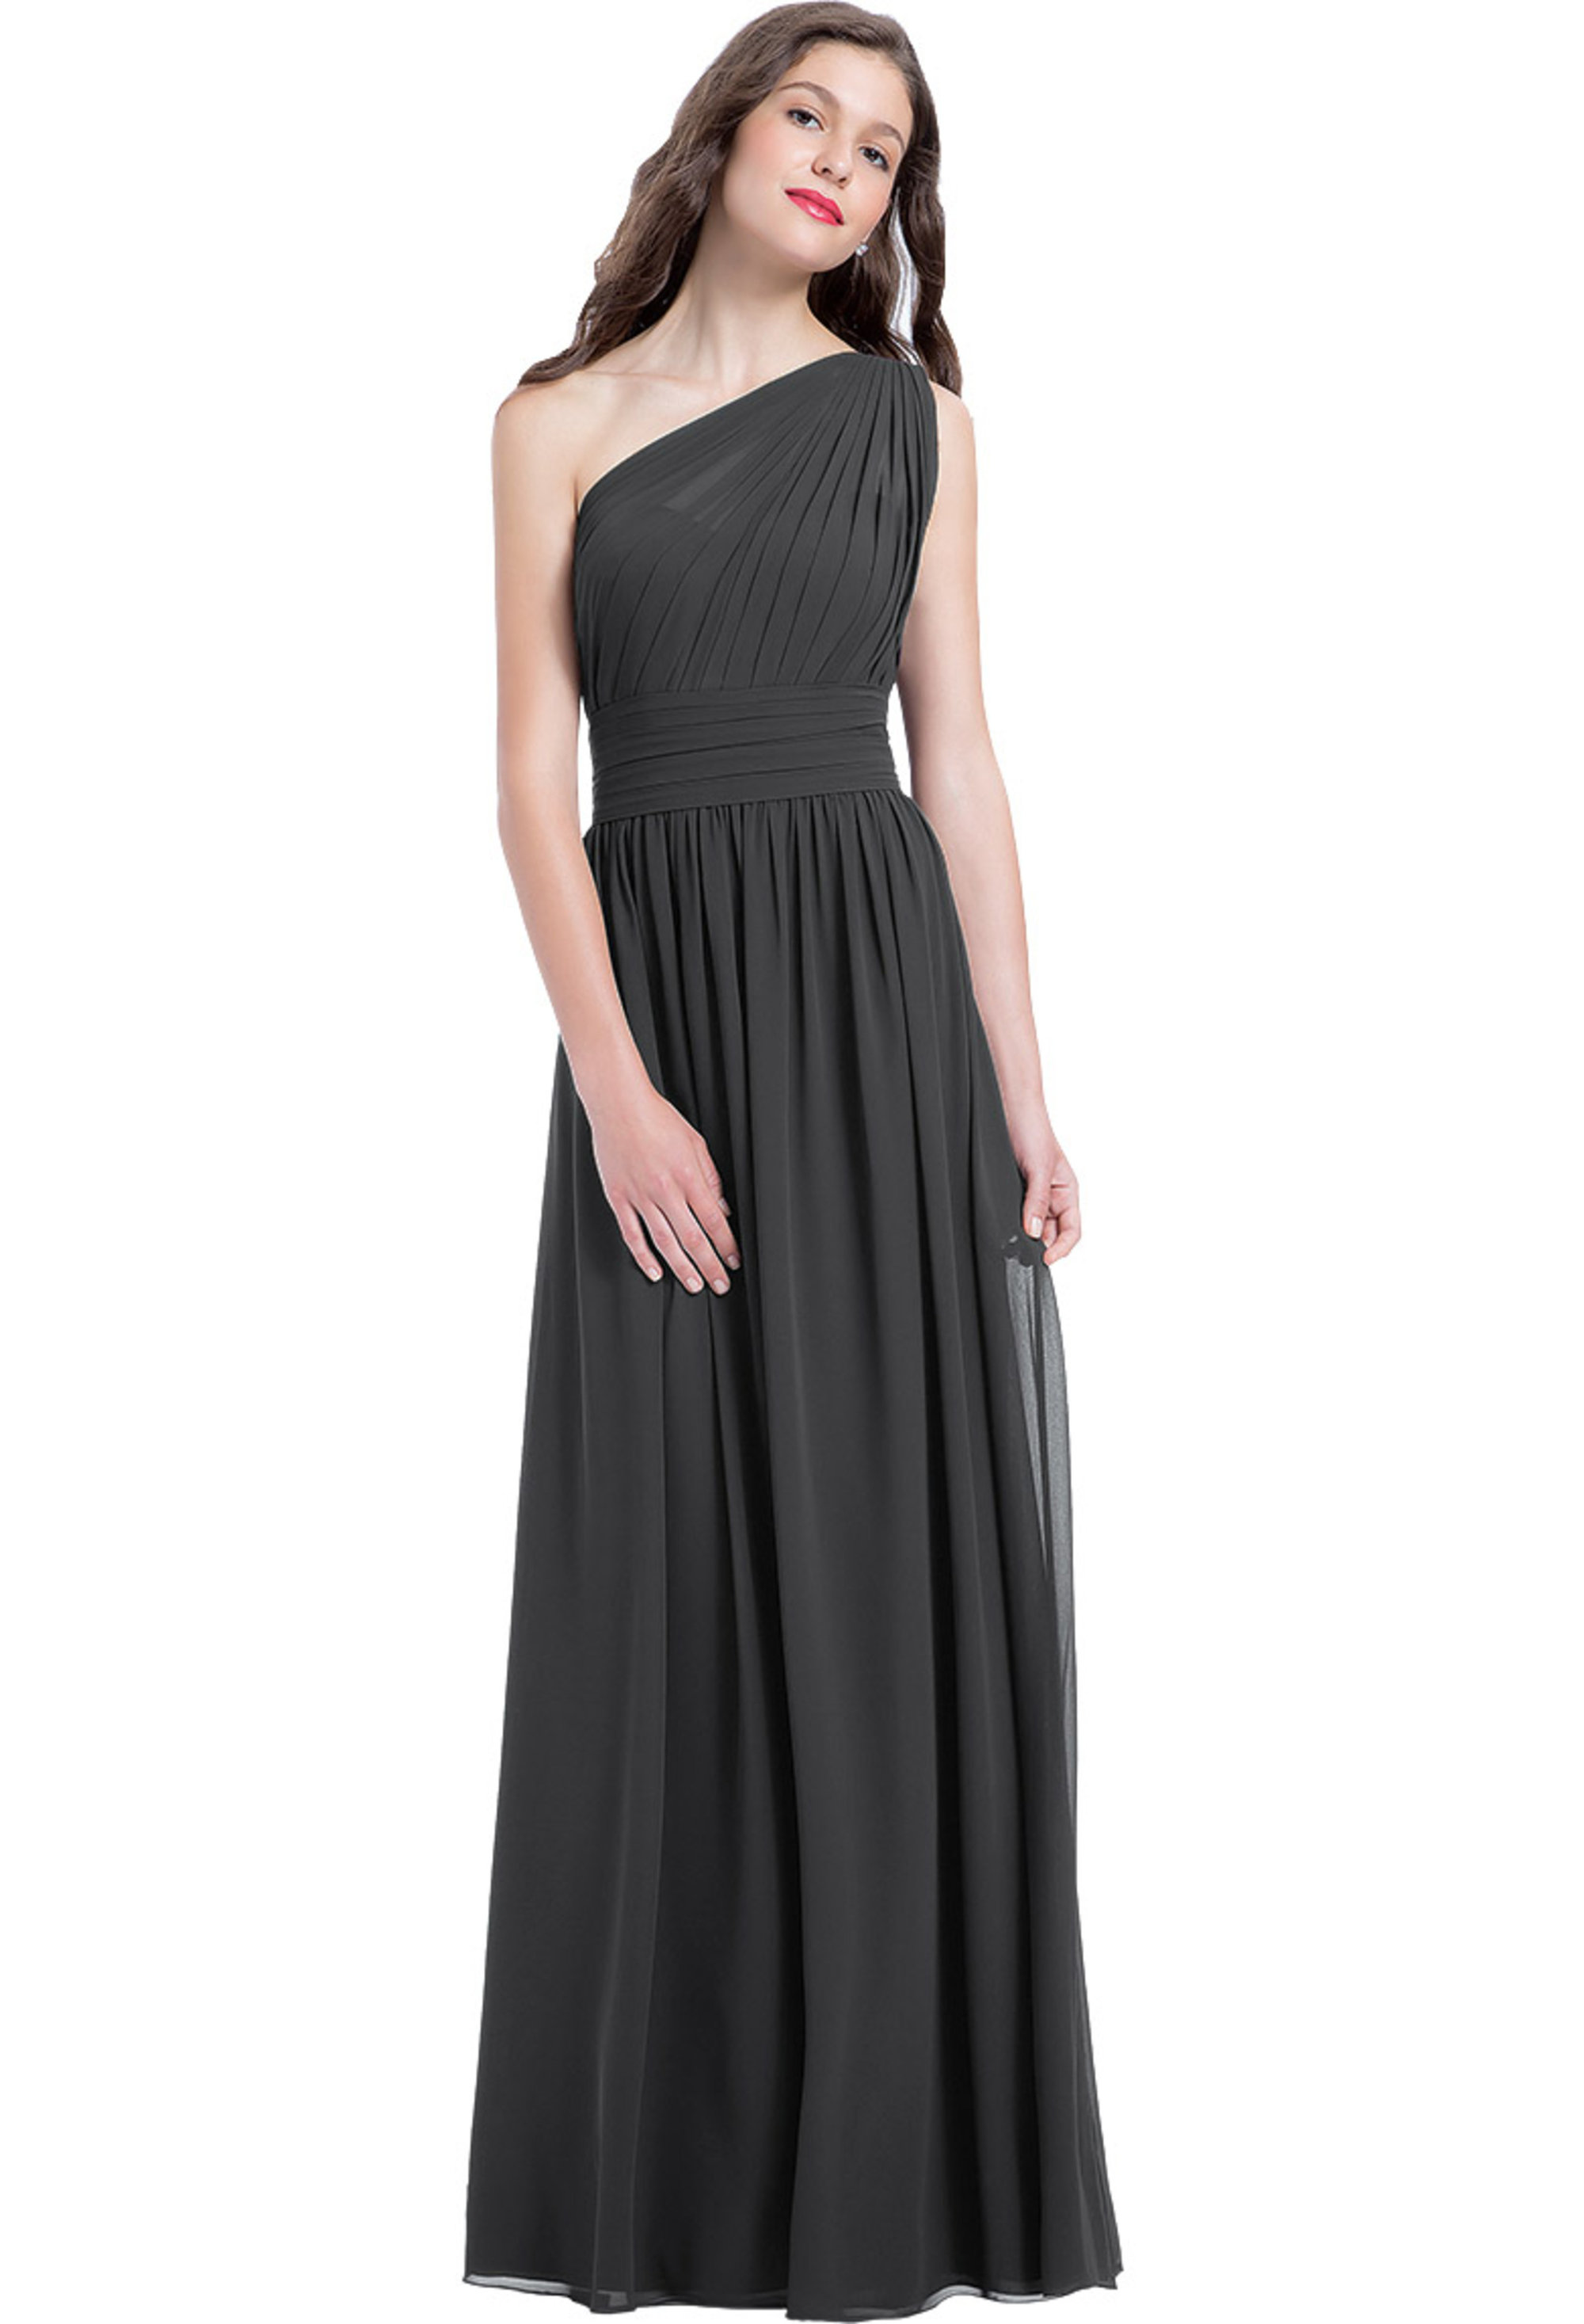 Bill Levkoff CHARCOAL Chiffon One Shoulder A-line gown, $224.00 Front